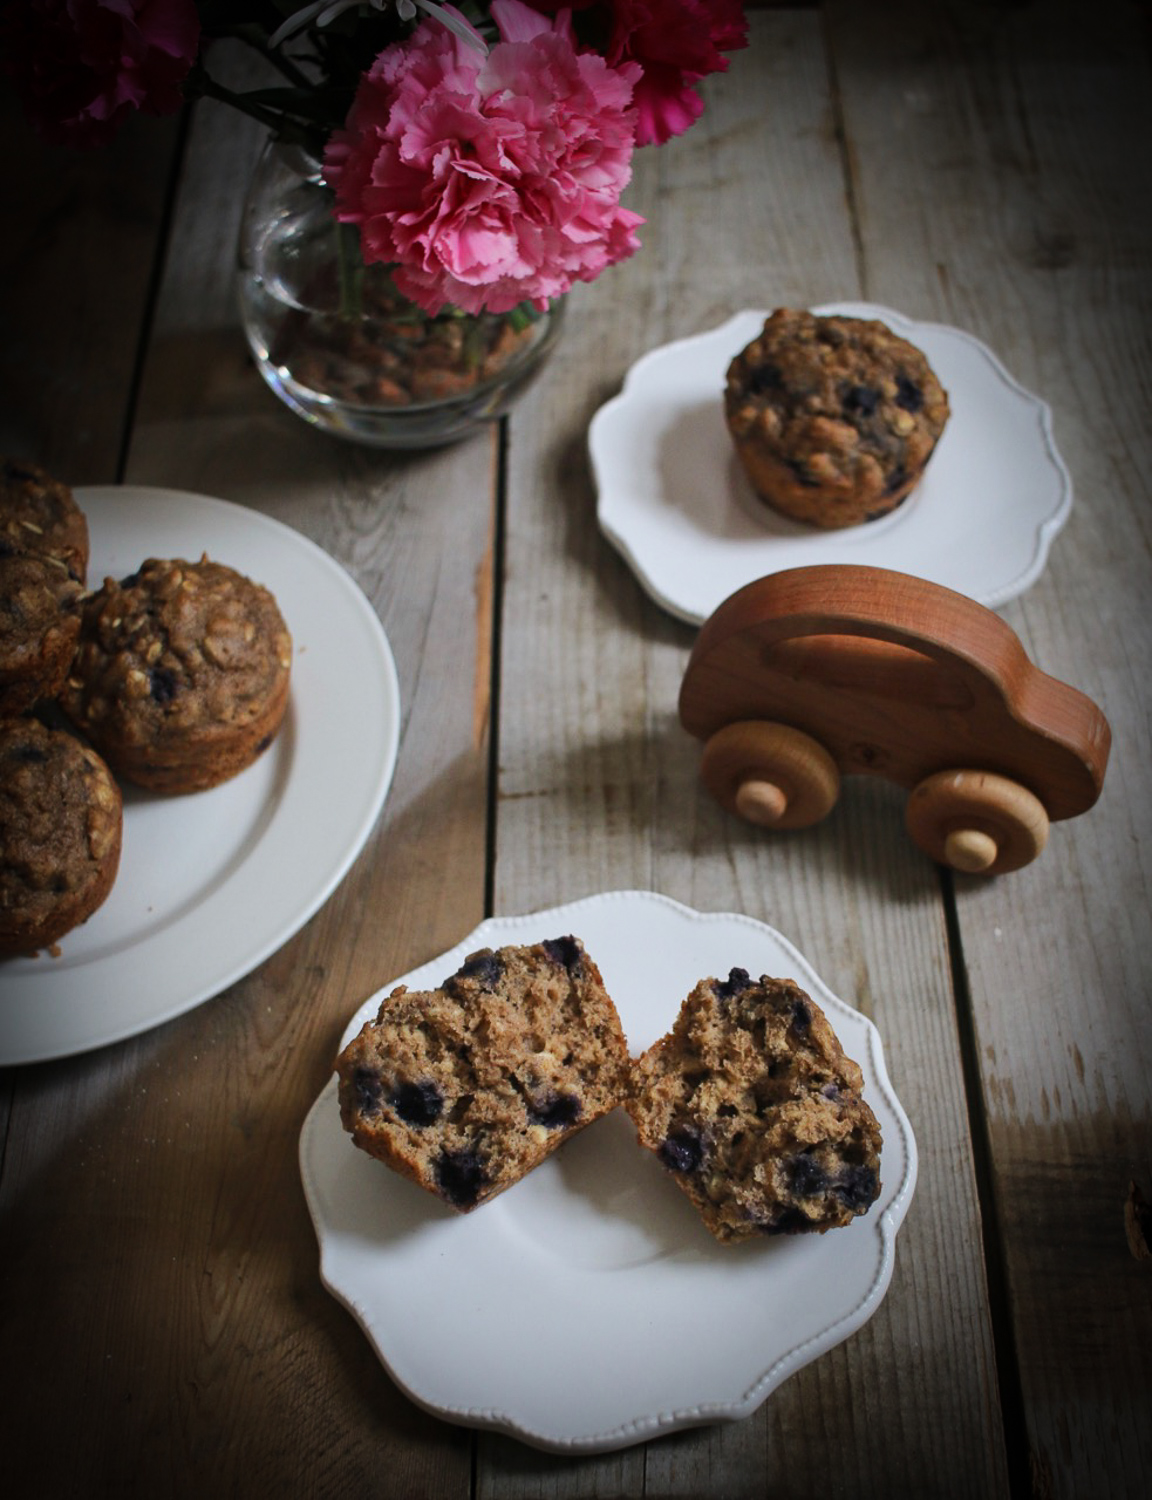 - You may also enjoy Whole Grain Blueberry Muffins.